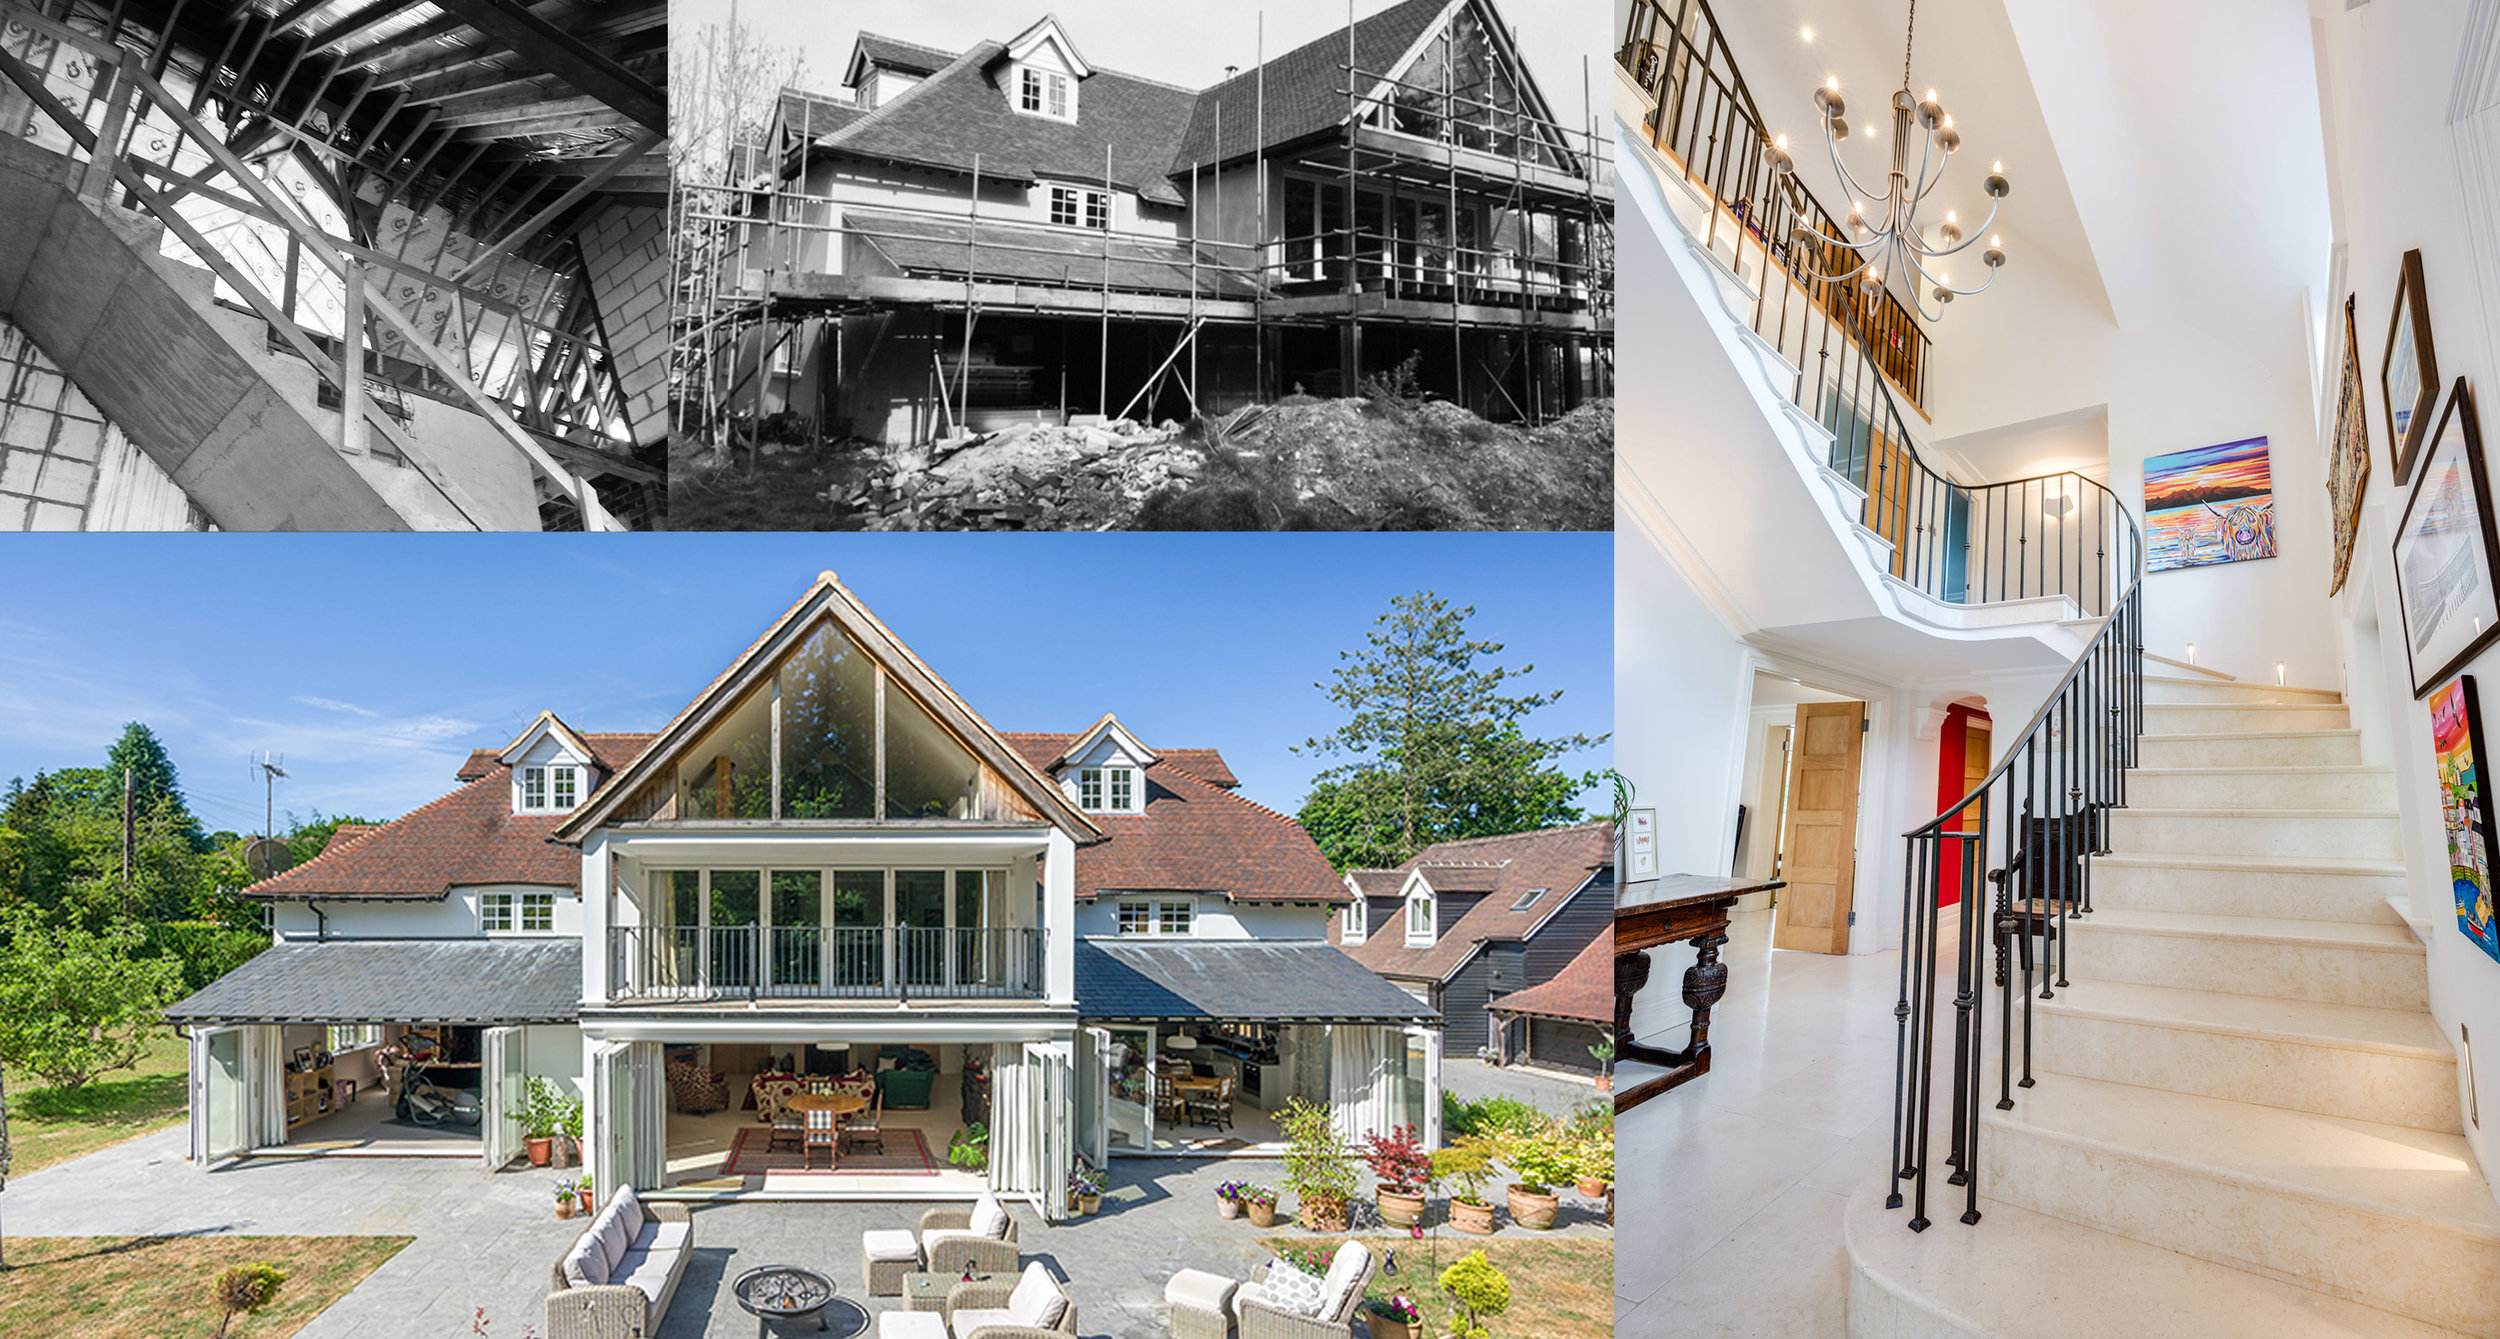 The White House - West Sussex - Complete refurbishment and extension of family home in West Sussex. Working closely with the client we developed and designed many of the internal features including a cantilevered marble staircase and numerous other bespoke finishes.